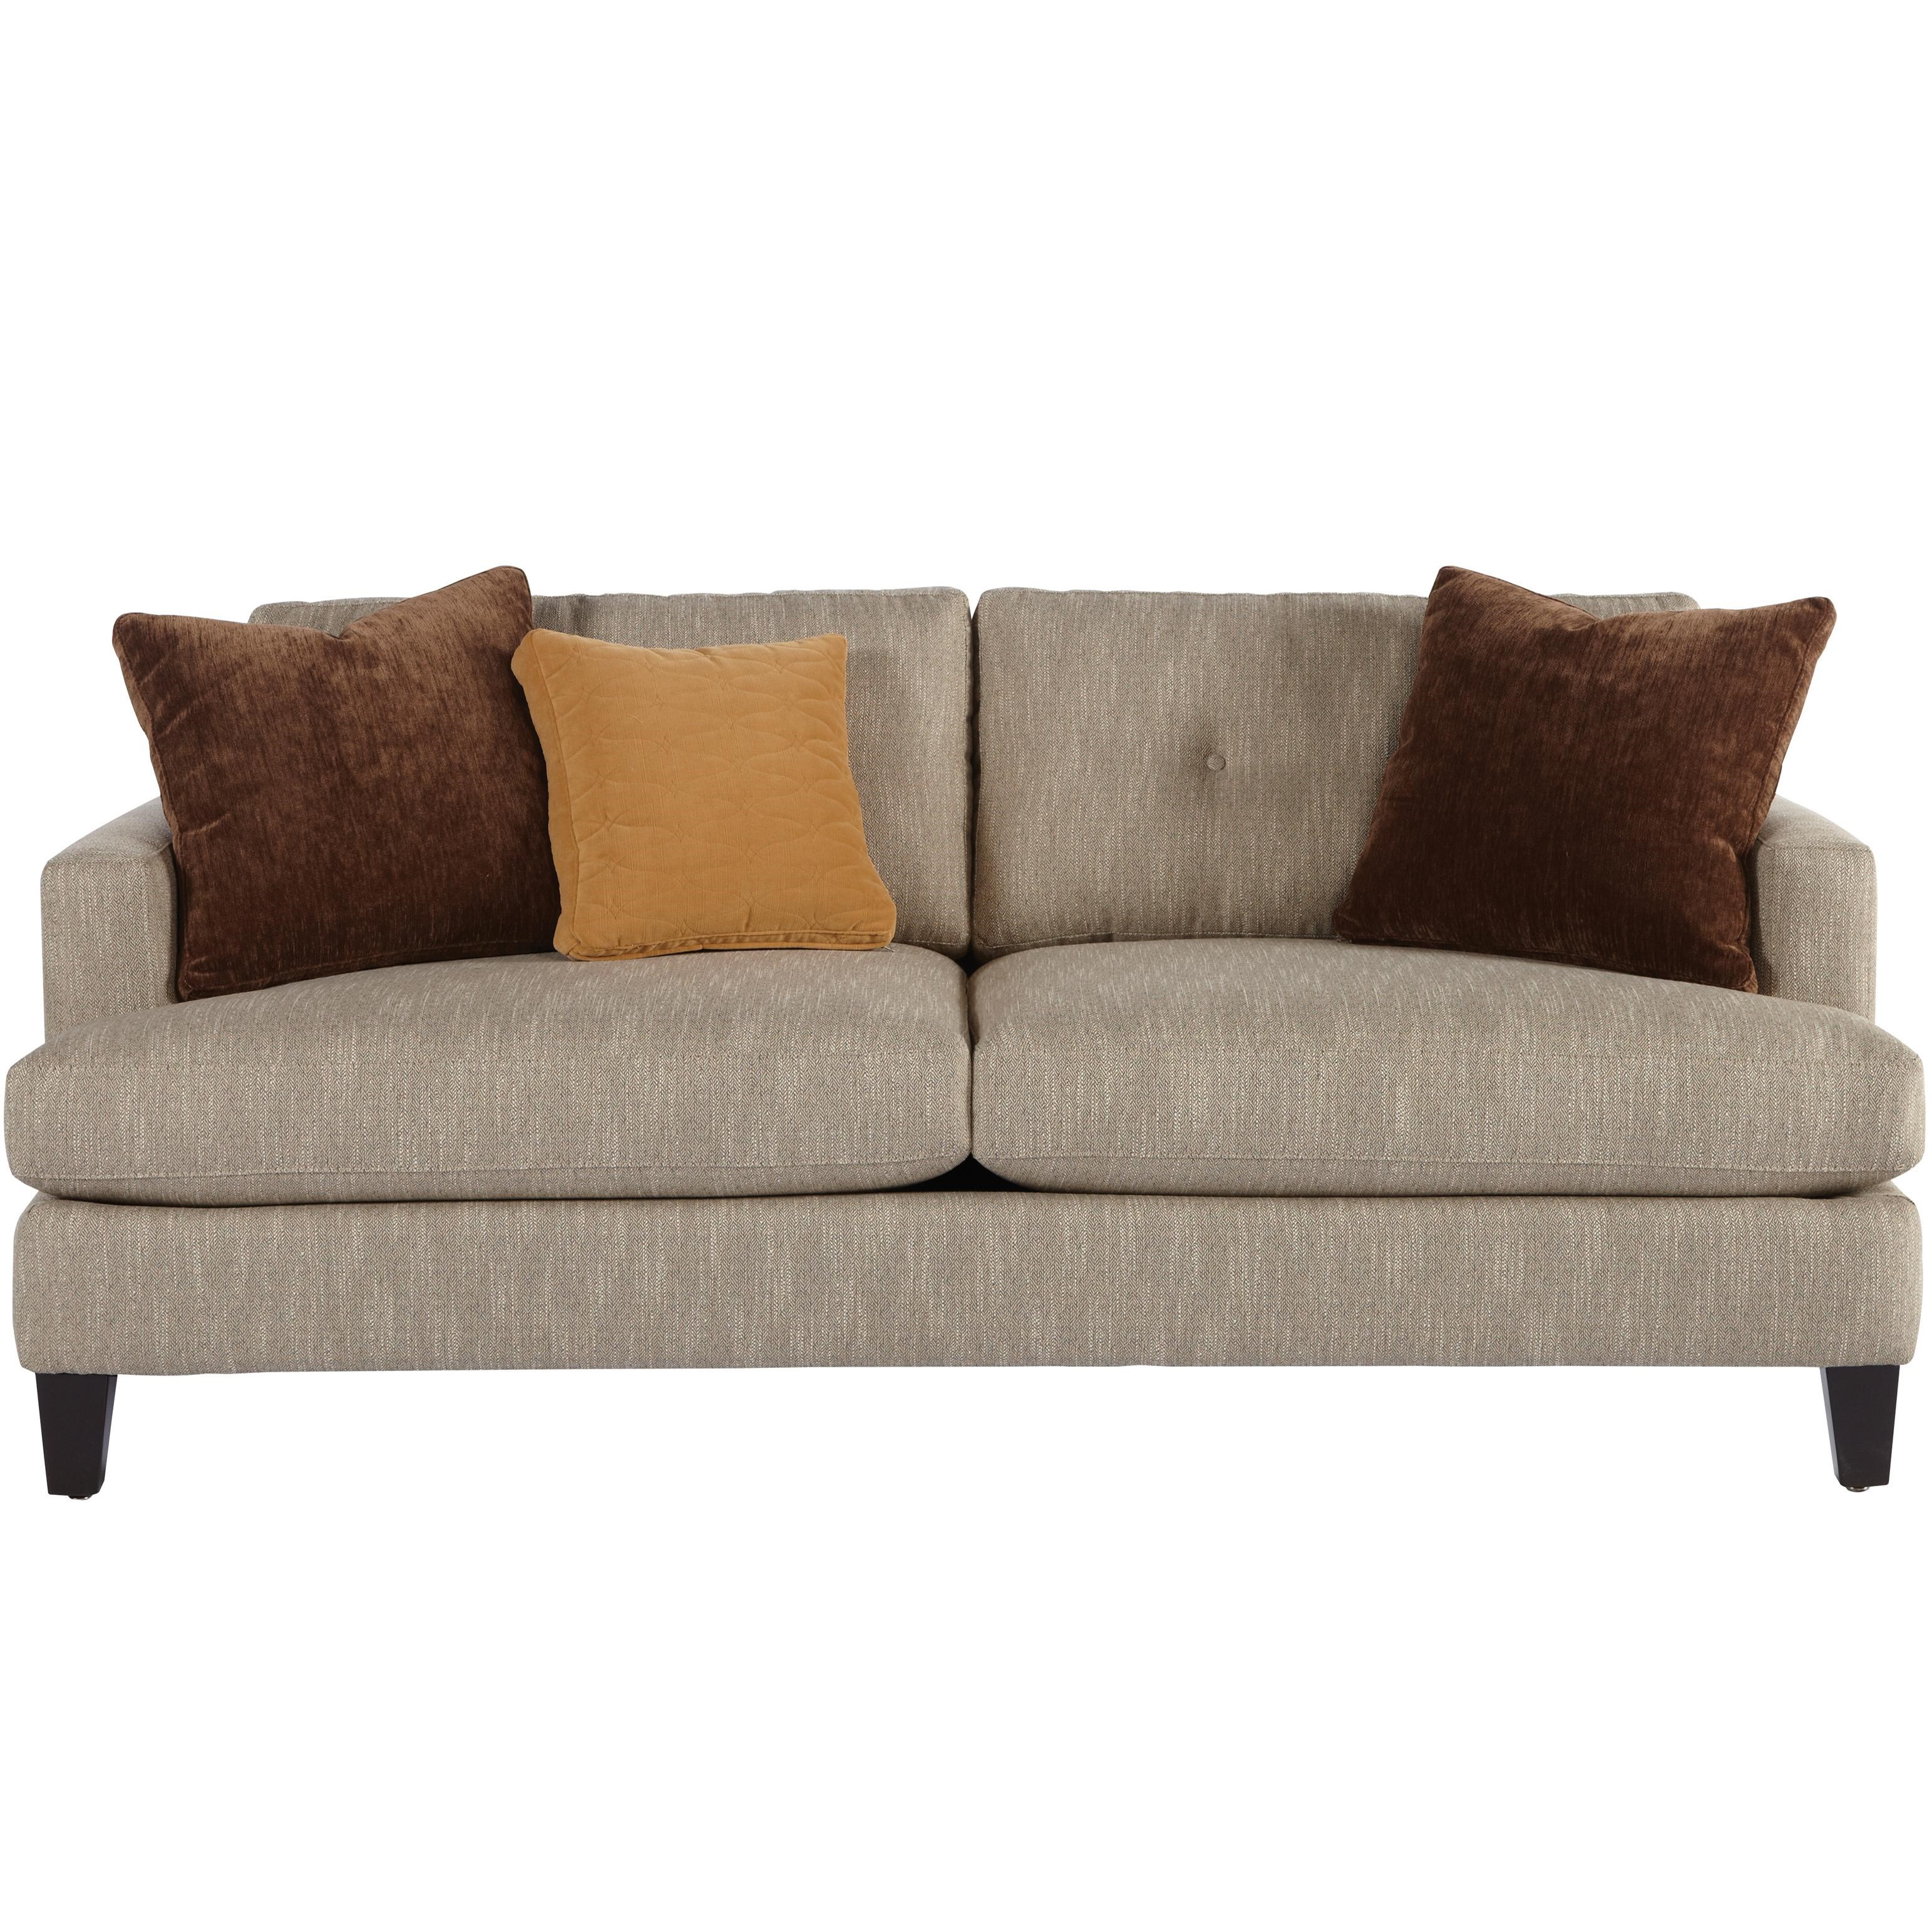 Jonathan Louis Furniture Review Jonathan Louis Mia Contemporary Sofa With  Track Arms ..